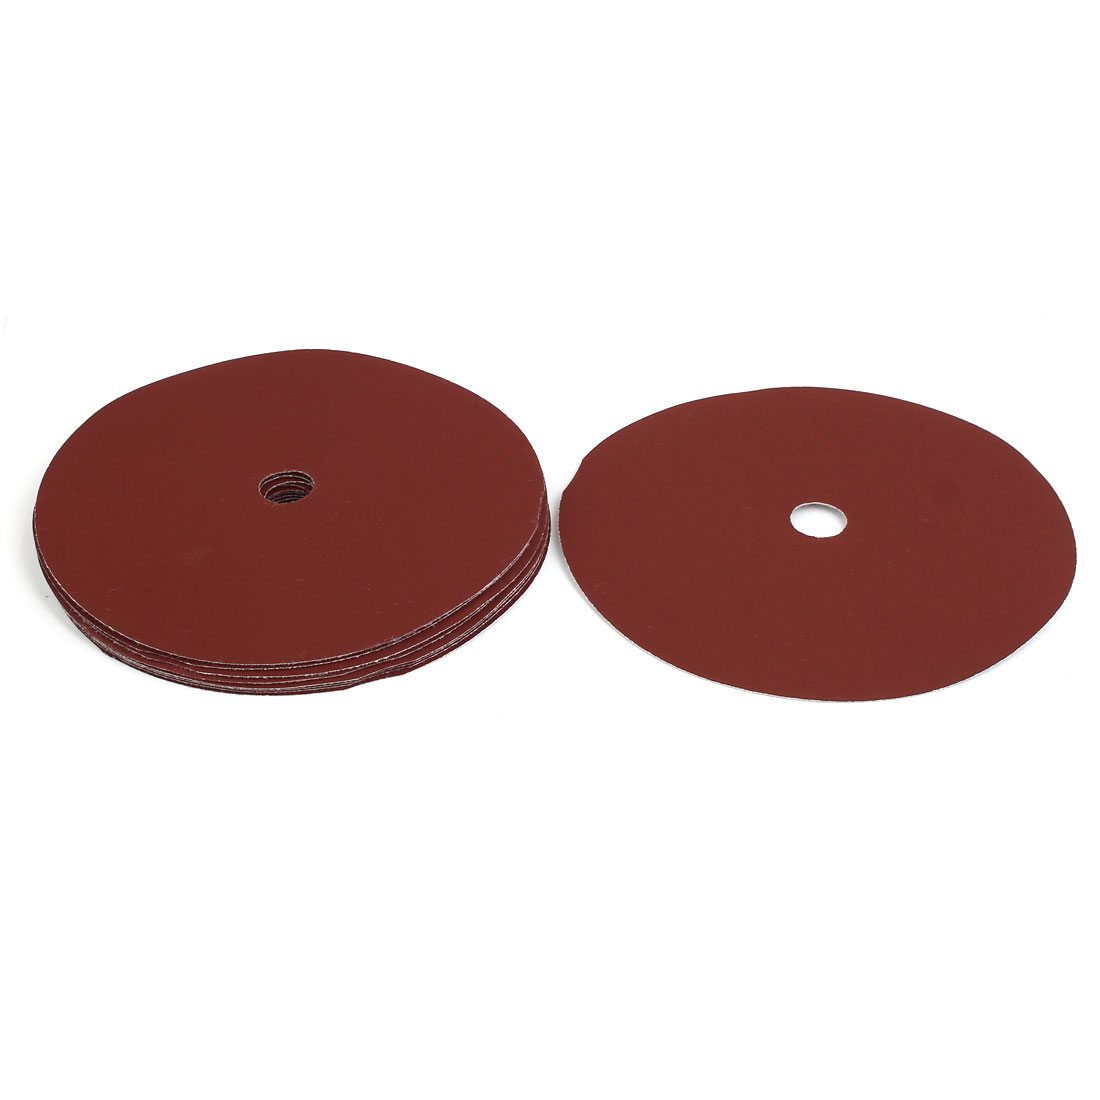 "600 Grit 1 Hole 7"" Diameter Sandpaper Hook Loop Sanding Disc 10 Pcs"